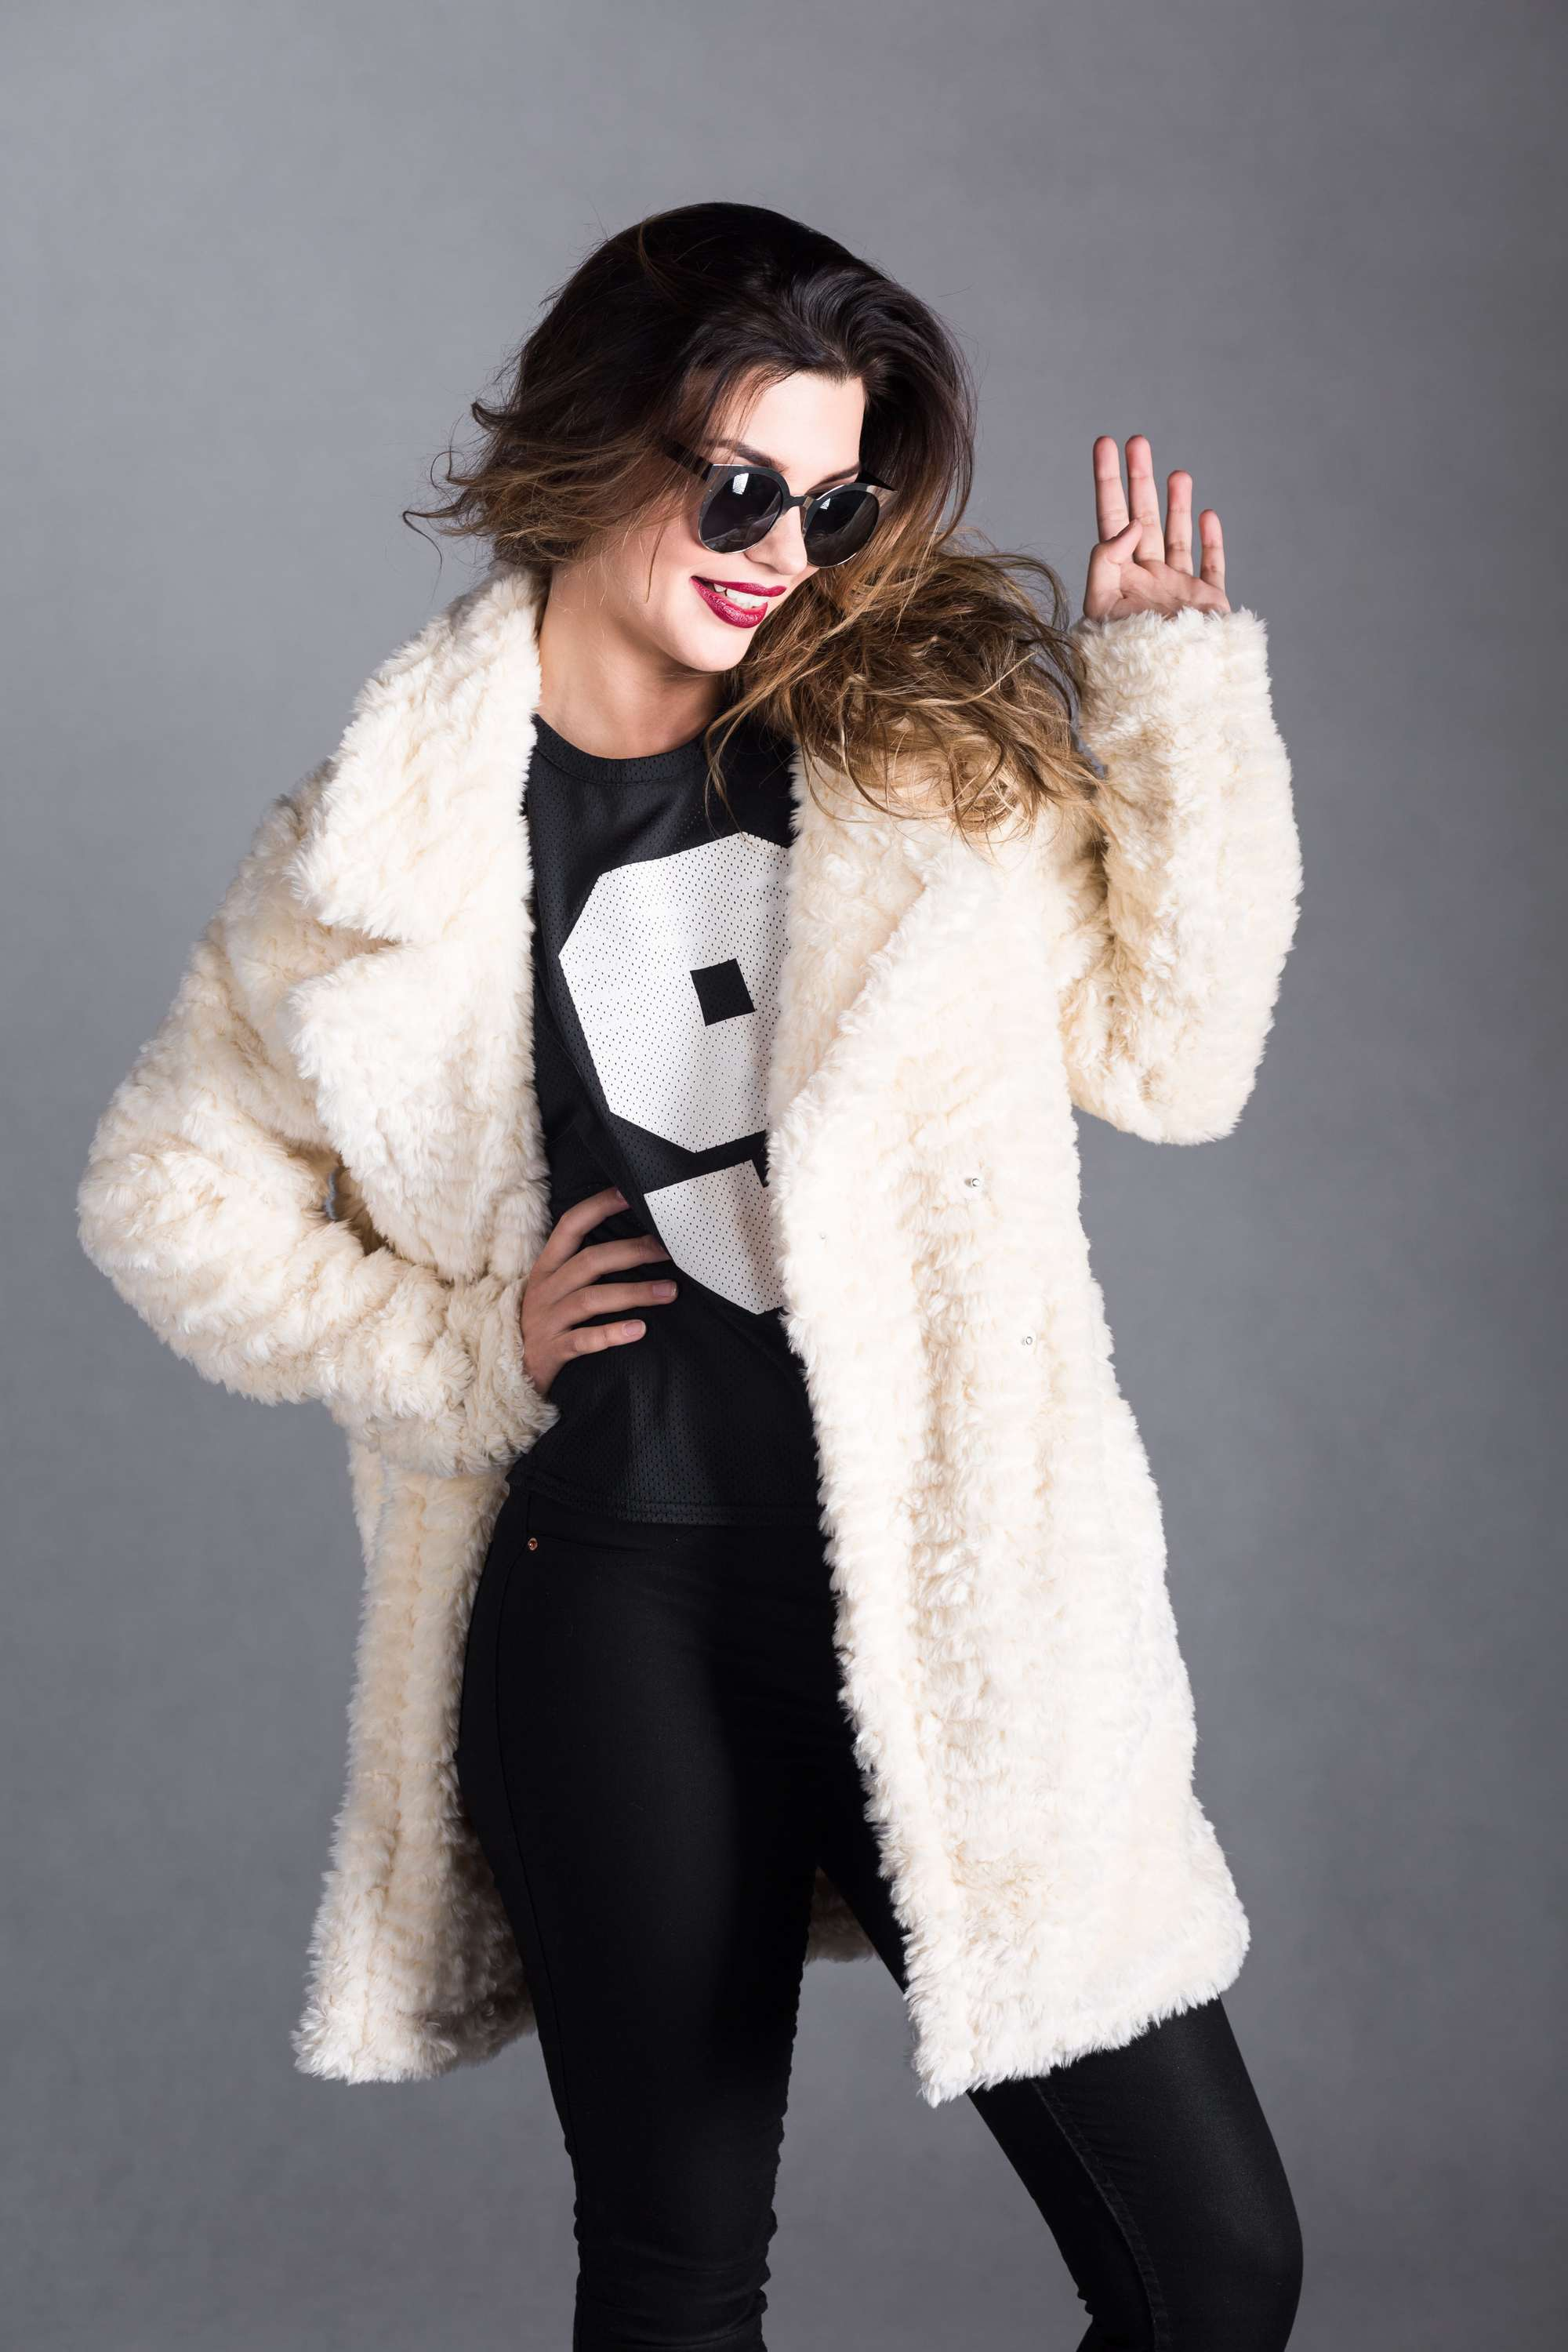 a woman standing in front of a grey background wearing a fur coat and black black outfit